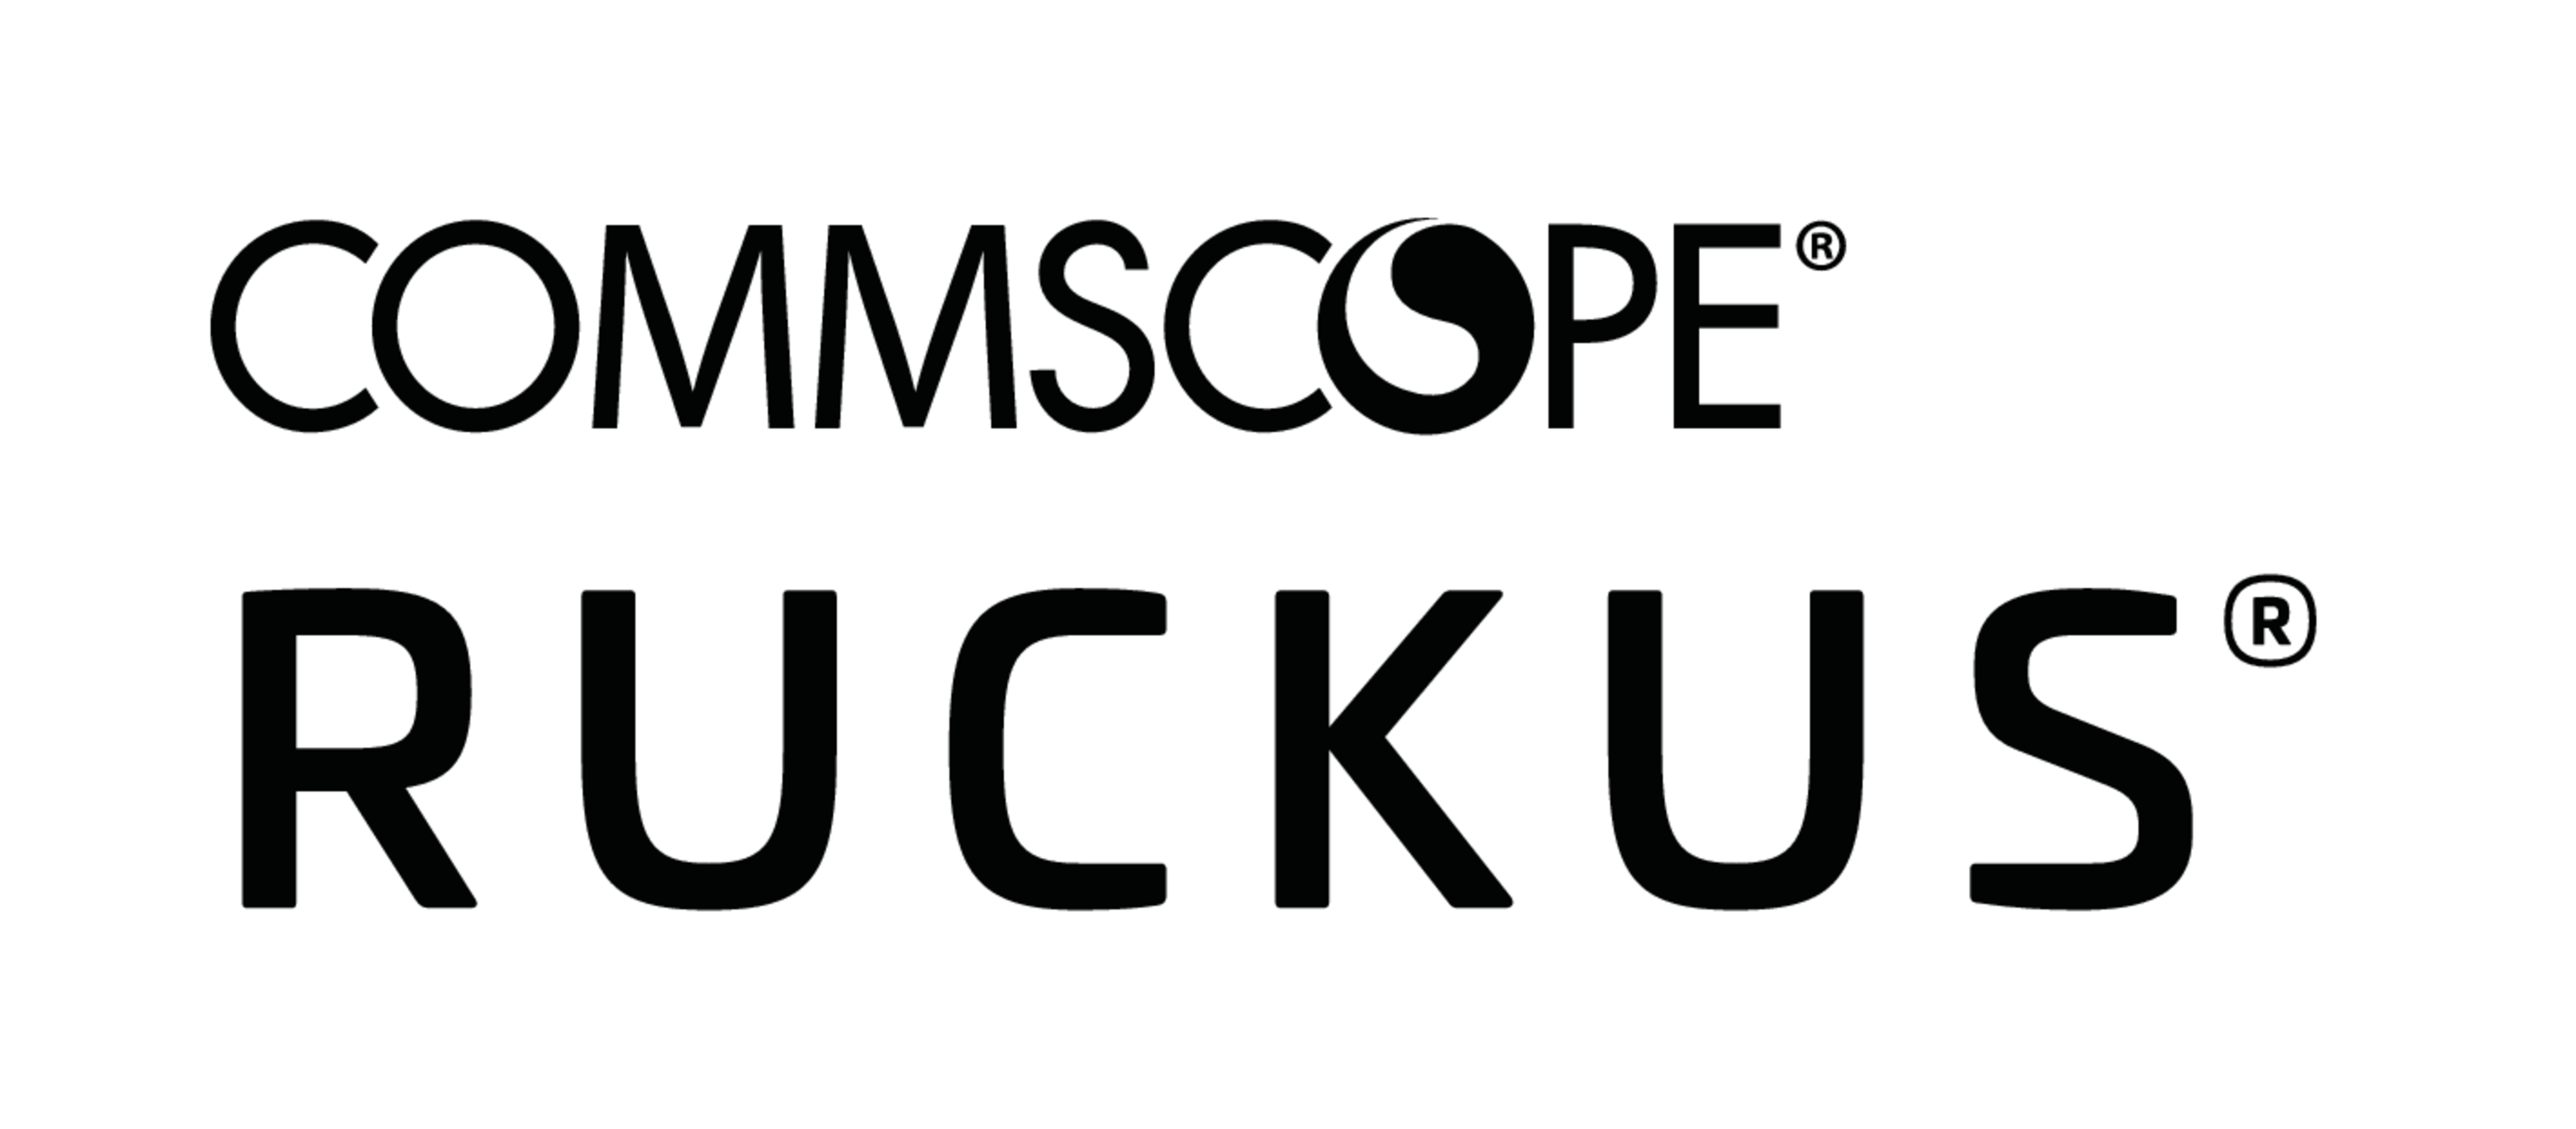 Commscope-Ruckus Logo